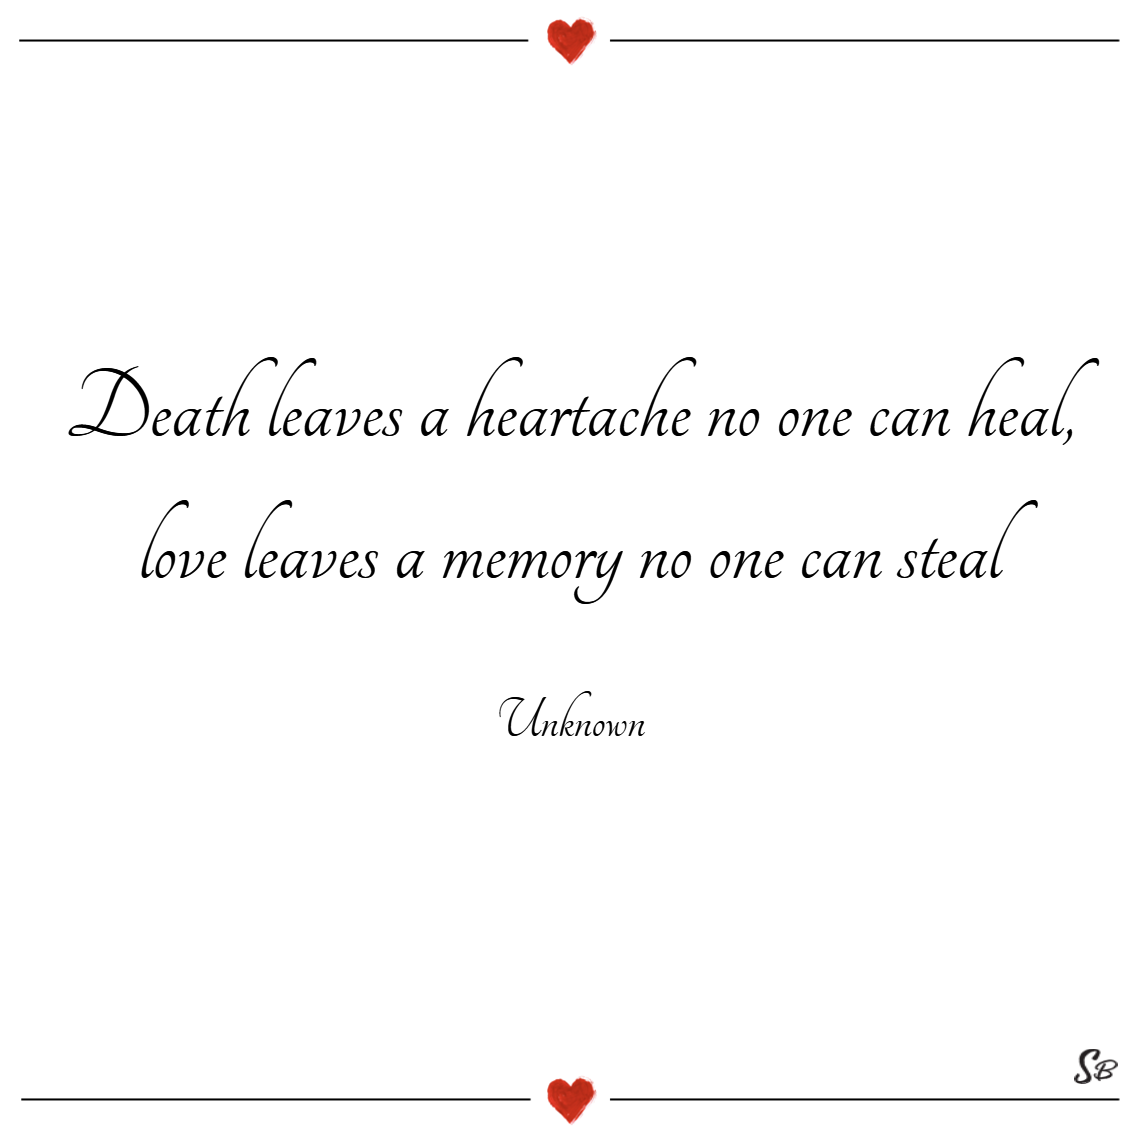 Death leaves a heartache no one can heal, love leaves a memory no one can steal. – unknown